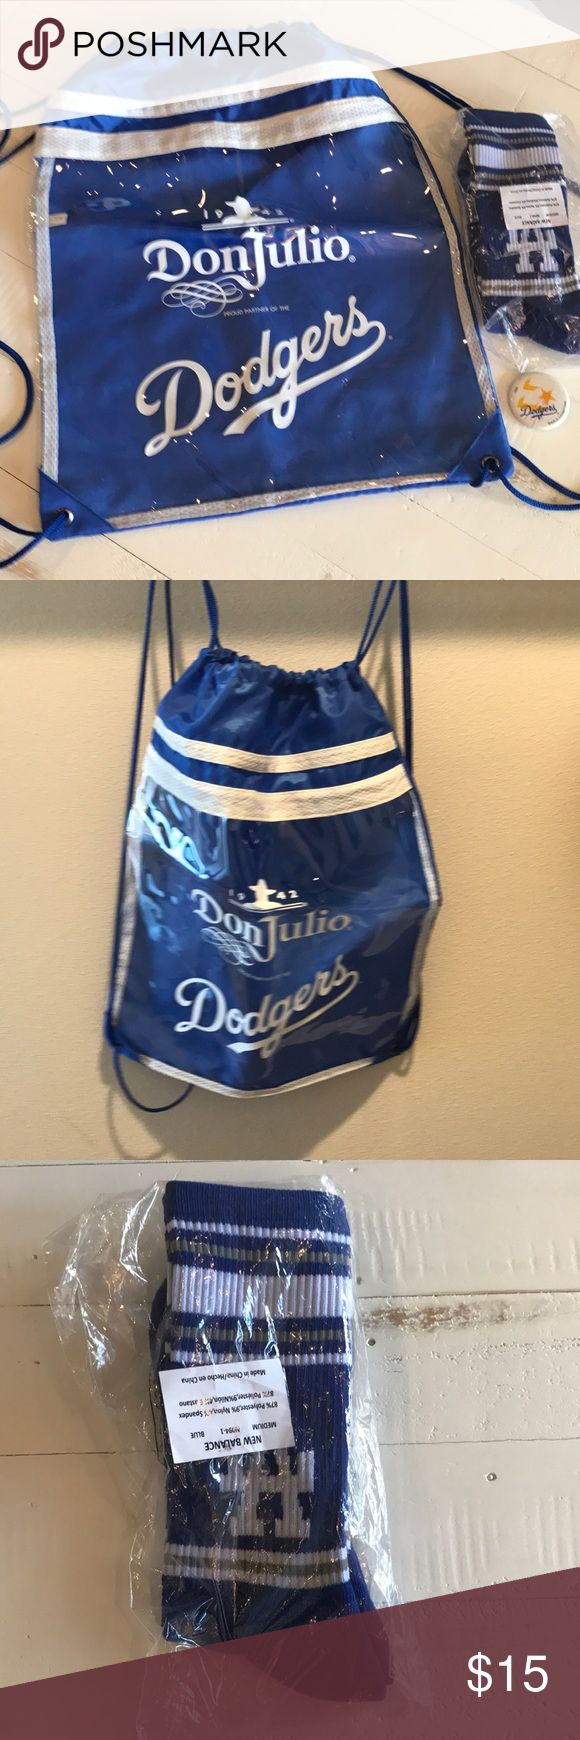 Dodger Bundle New! Don Julio Promotional Dodger Backpack, New Balance Dodger Socks & 1988 World Champion Pin.  The socks are size Medium. Dodger Accessories